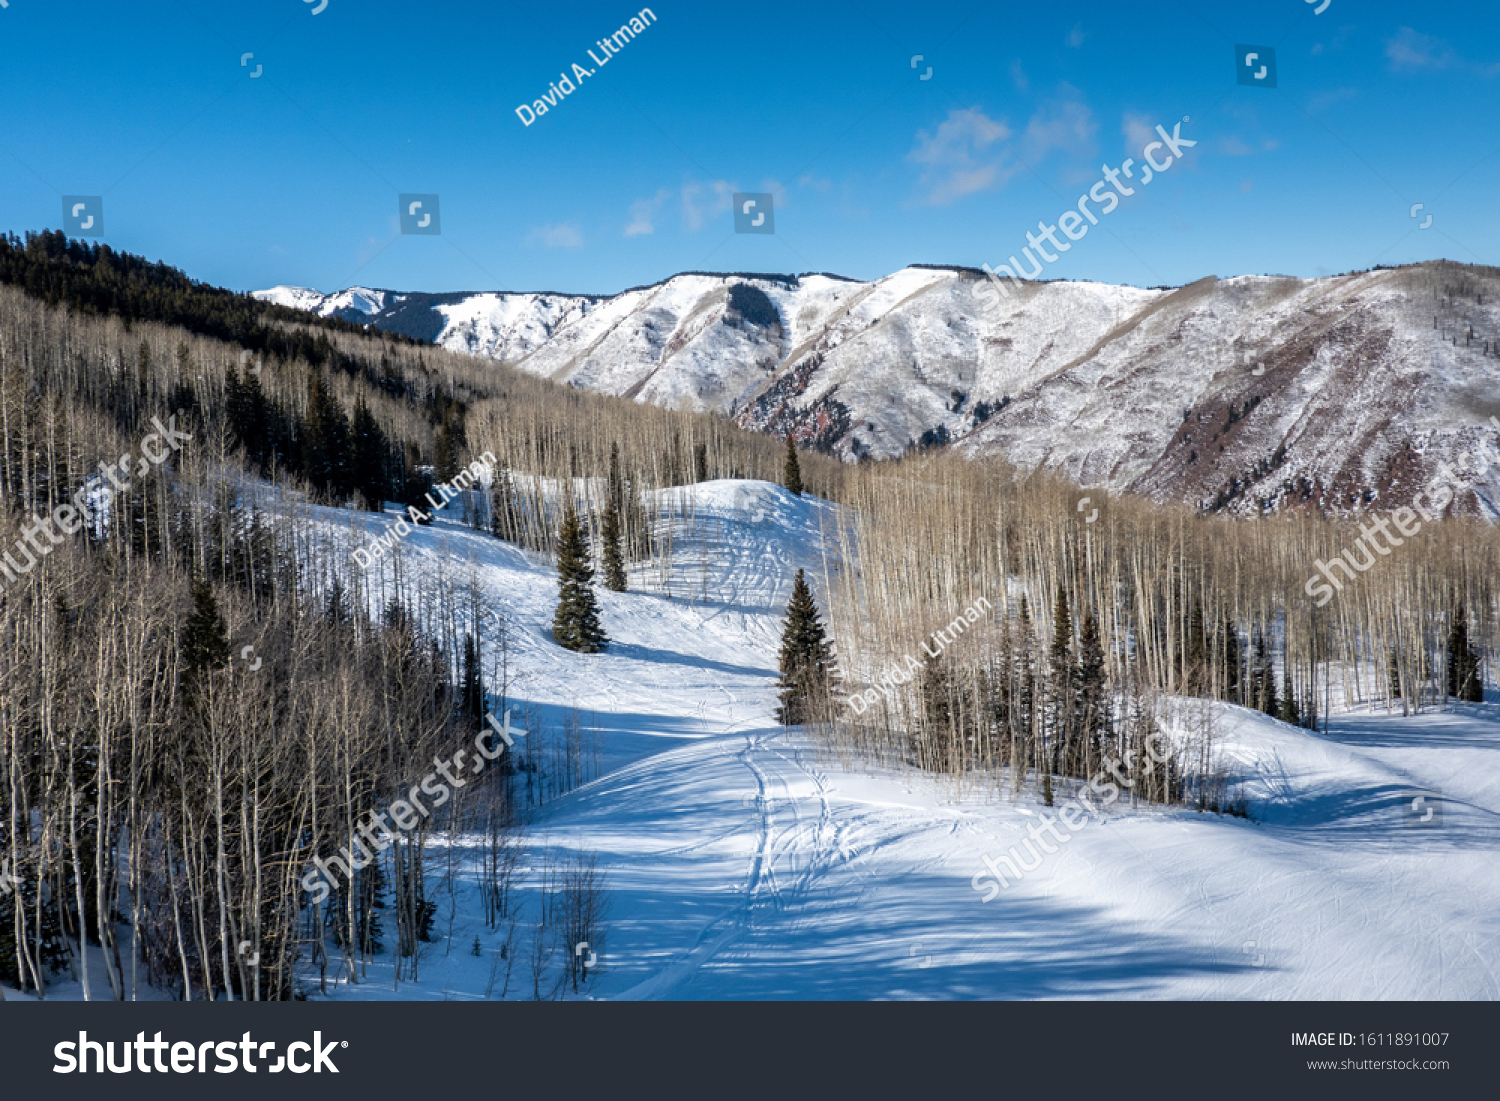 Aspen trees and Pine trees line the slopes at the Aspen Snowmass ski resort, in Snowmass village, in the Rocky Mountains of Colorado.